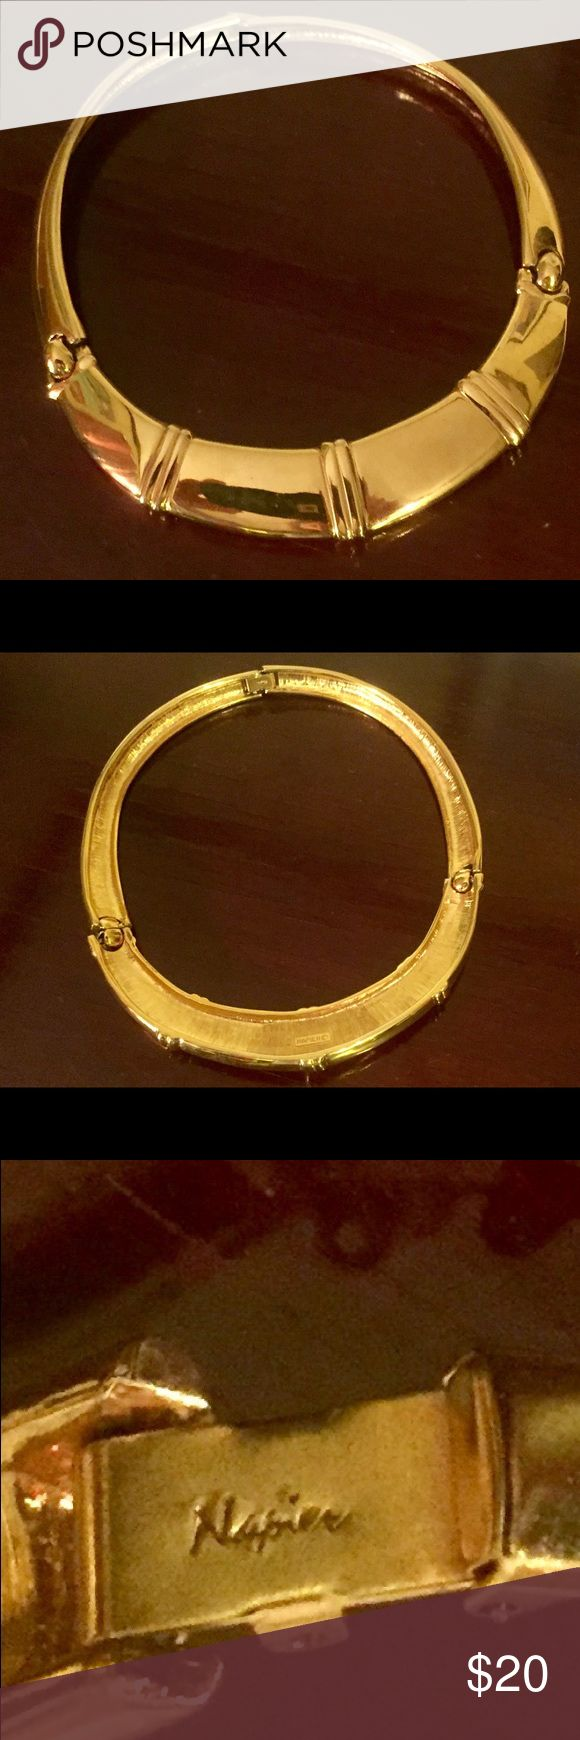 Vintage Napier Gold Choker Stunning vintage gold Napier choker divided into three sections with secure clasp closure.  Offers are always welcome🛍 Napier Jewelry Necklaces